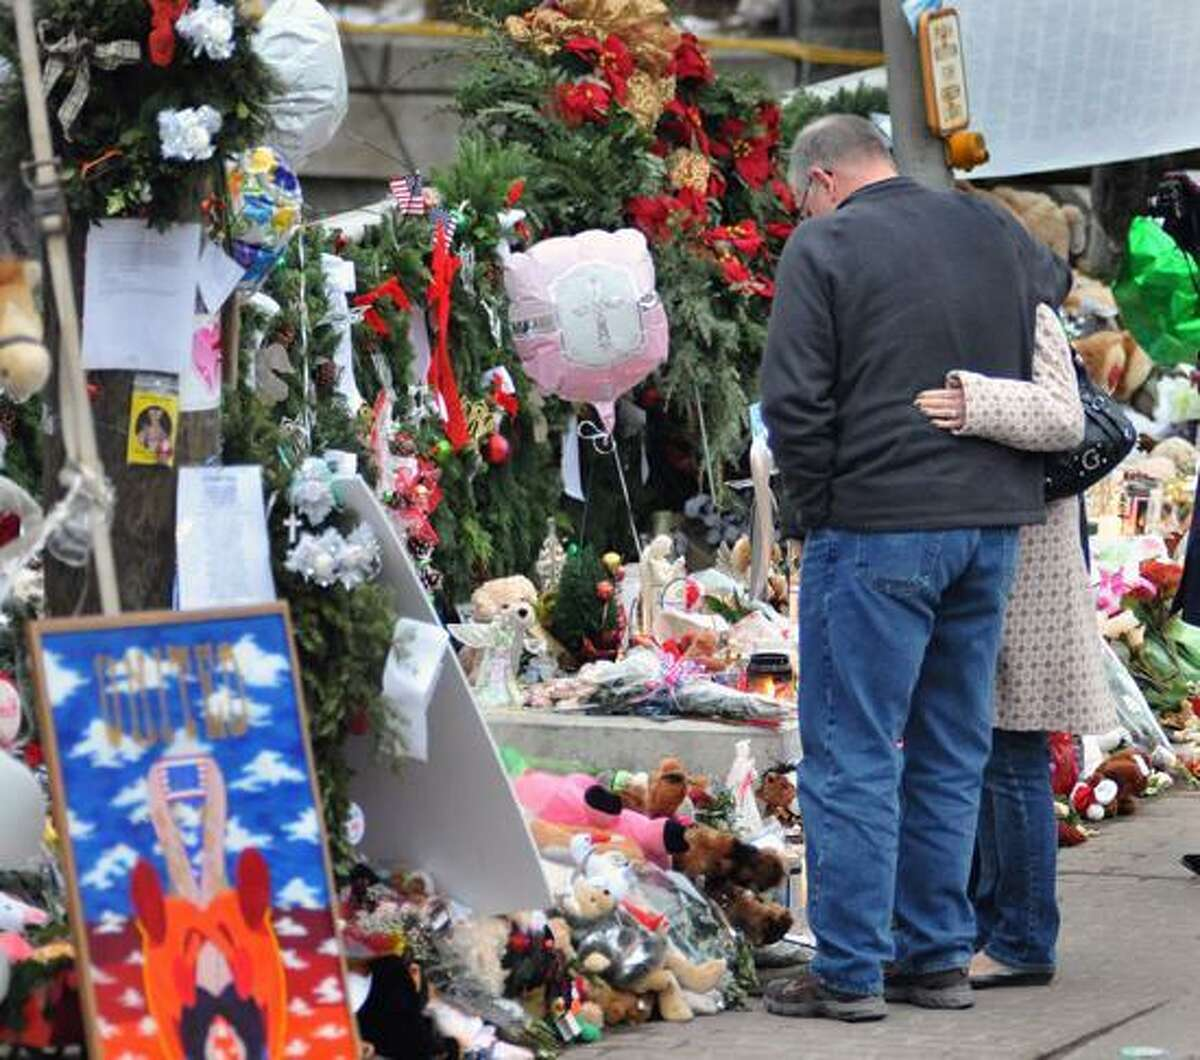 People look over the memorials in the center of Sandy Hook on Dec. 16, 2012. Register file photo